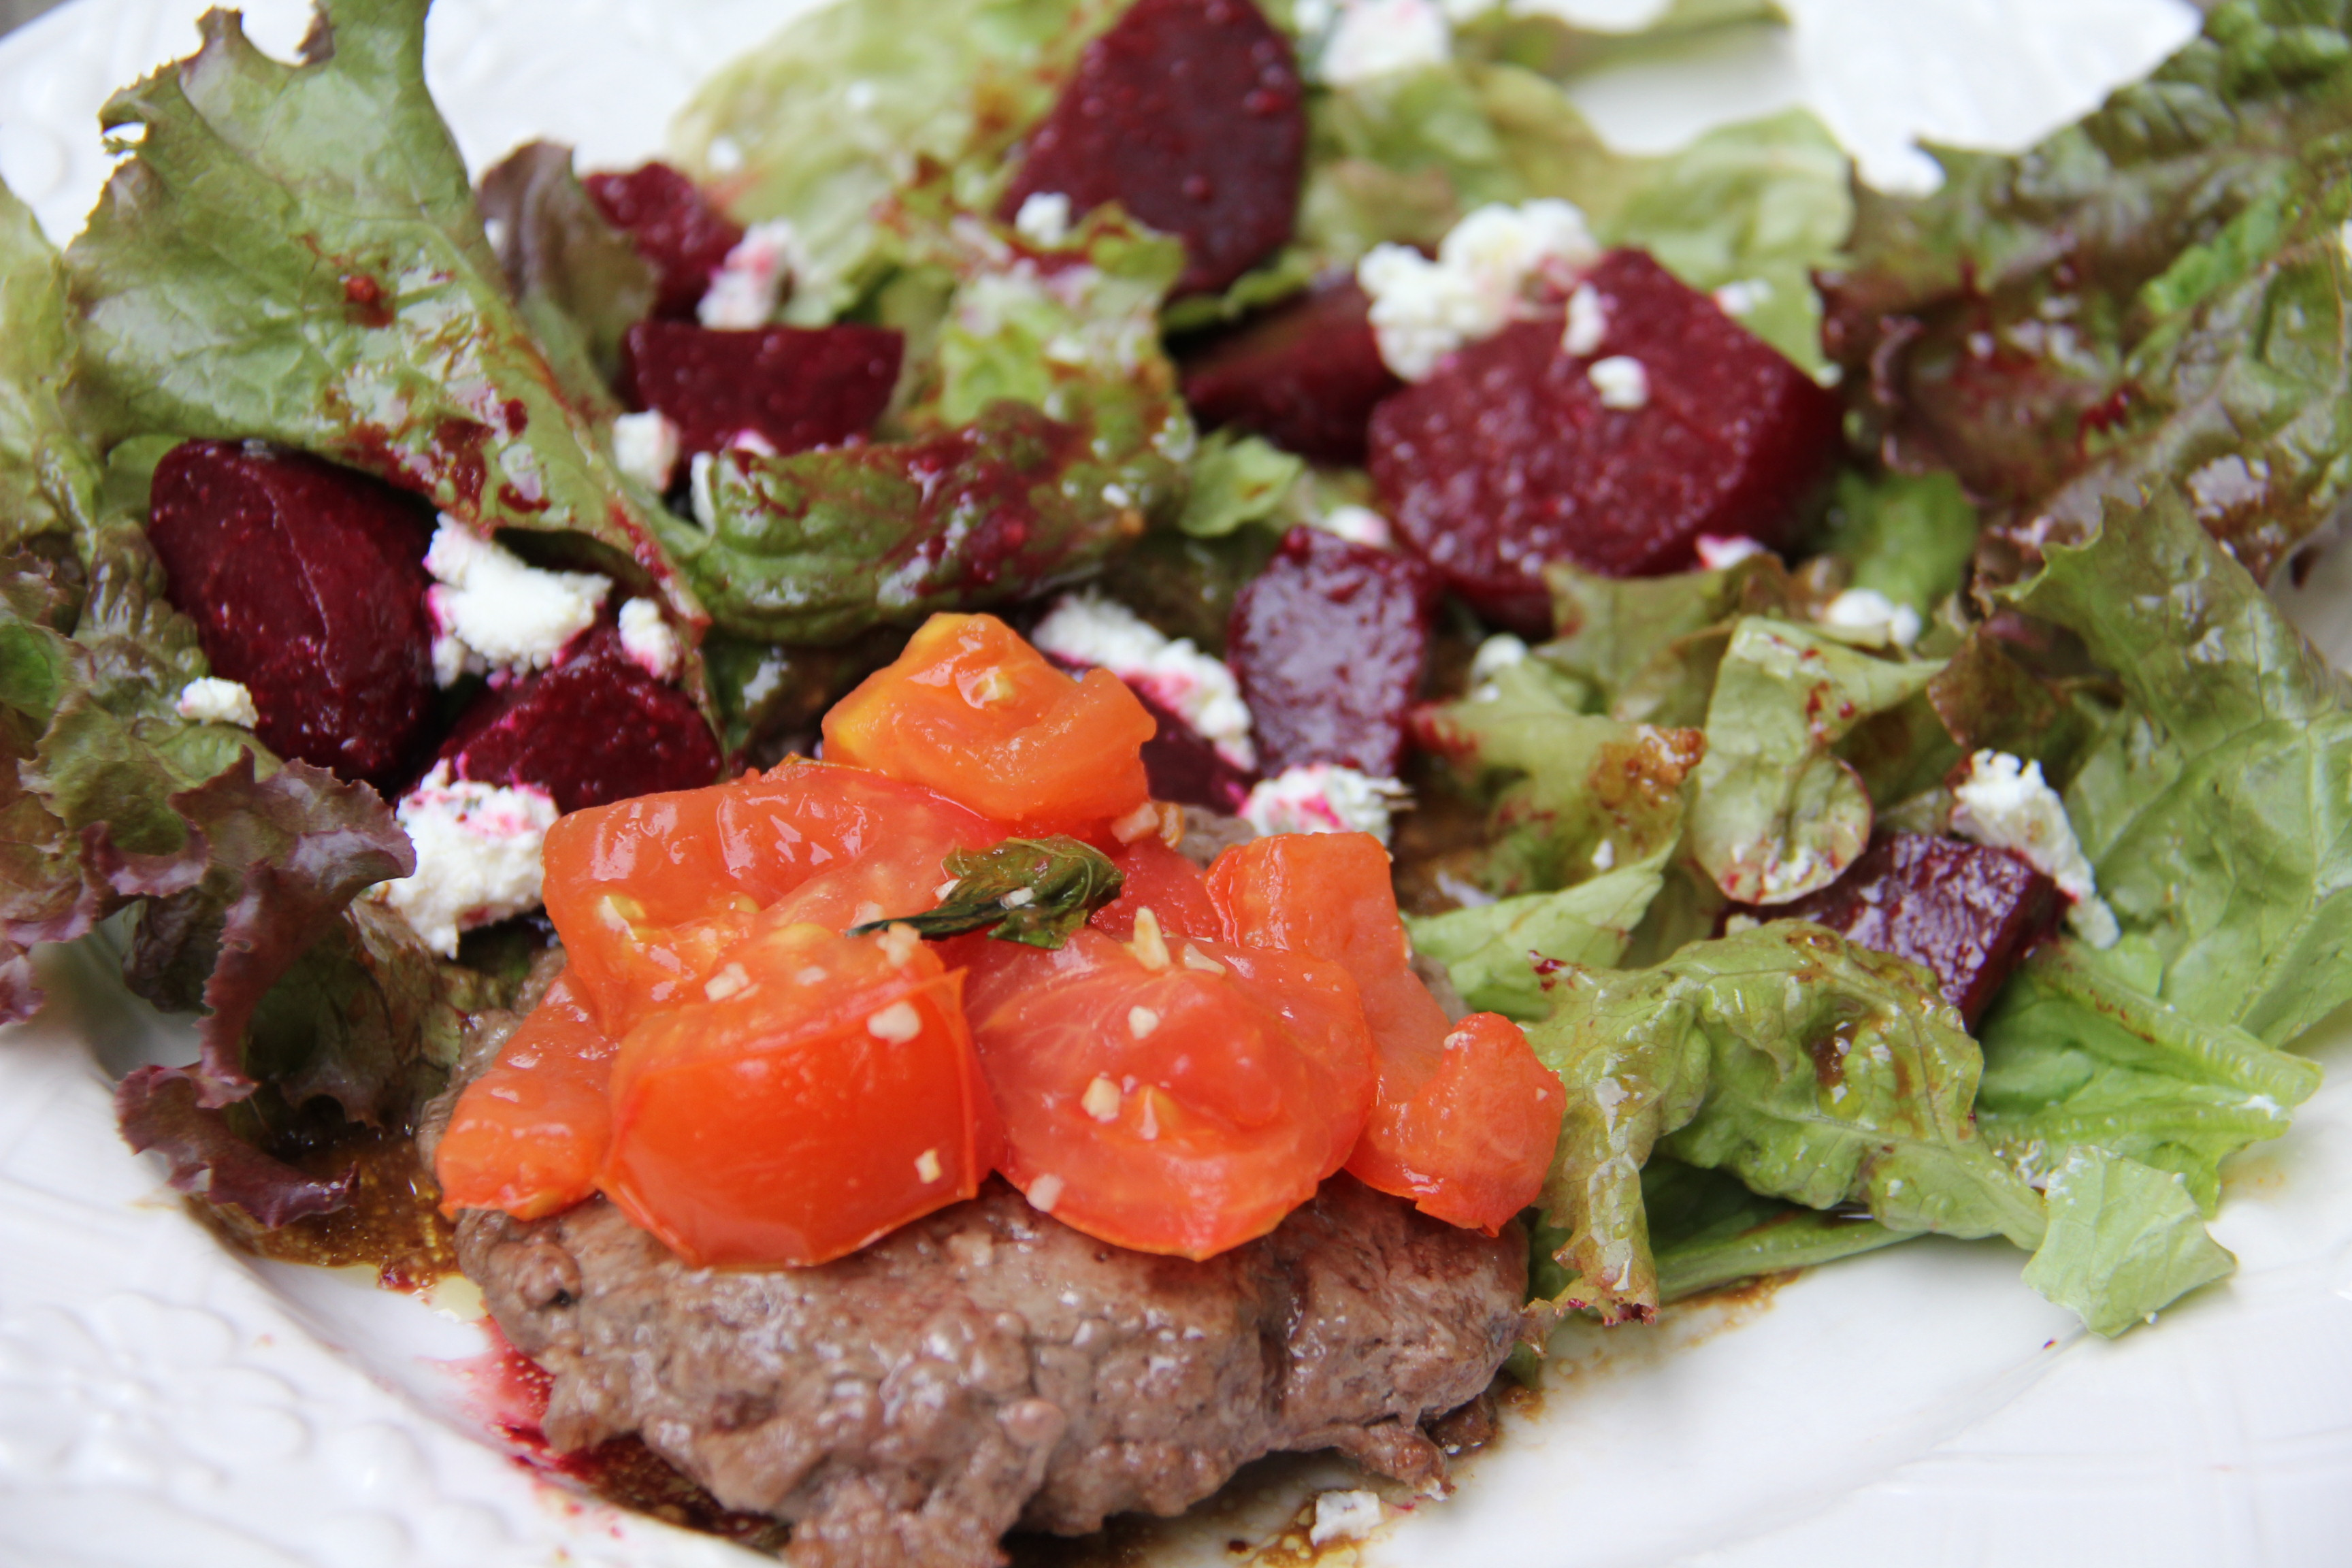 Bruschetta Tomato Hamburger with Beet Salad